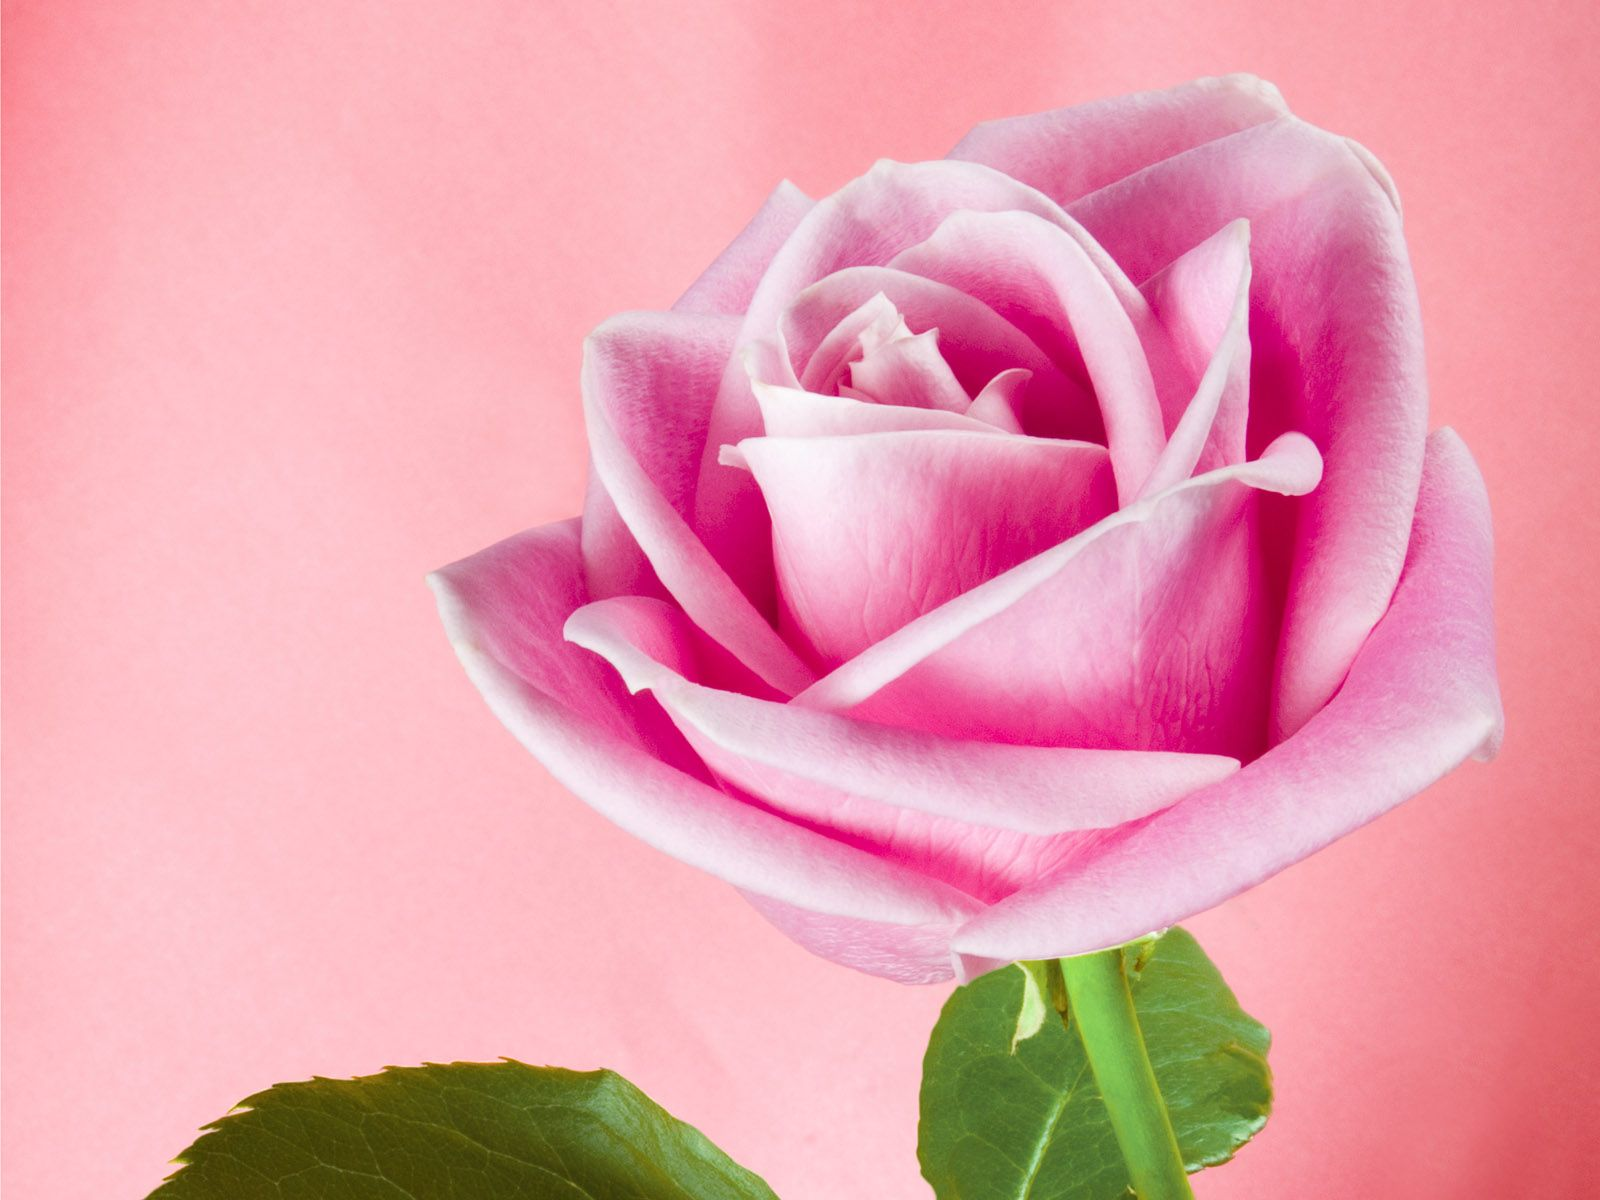 Pink Rose is the first political LGBT association in